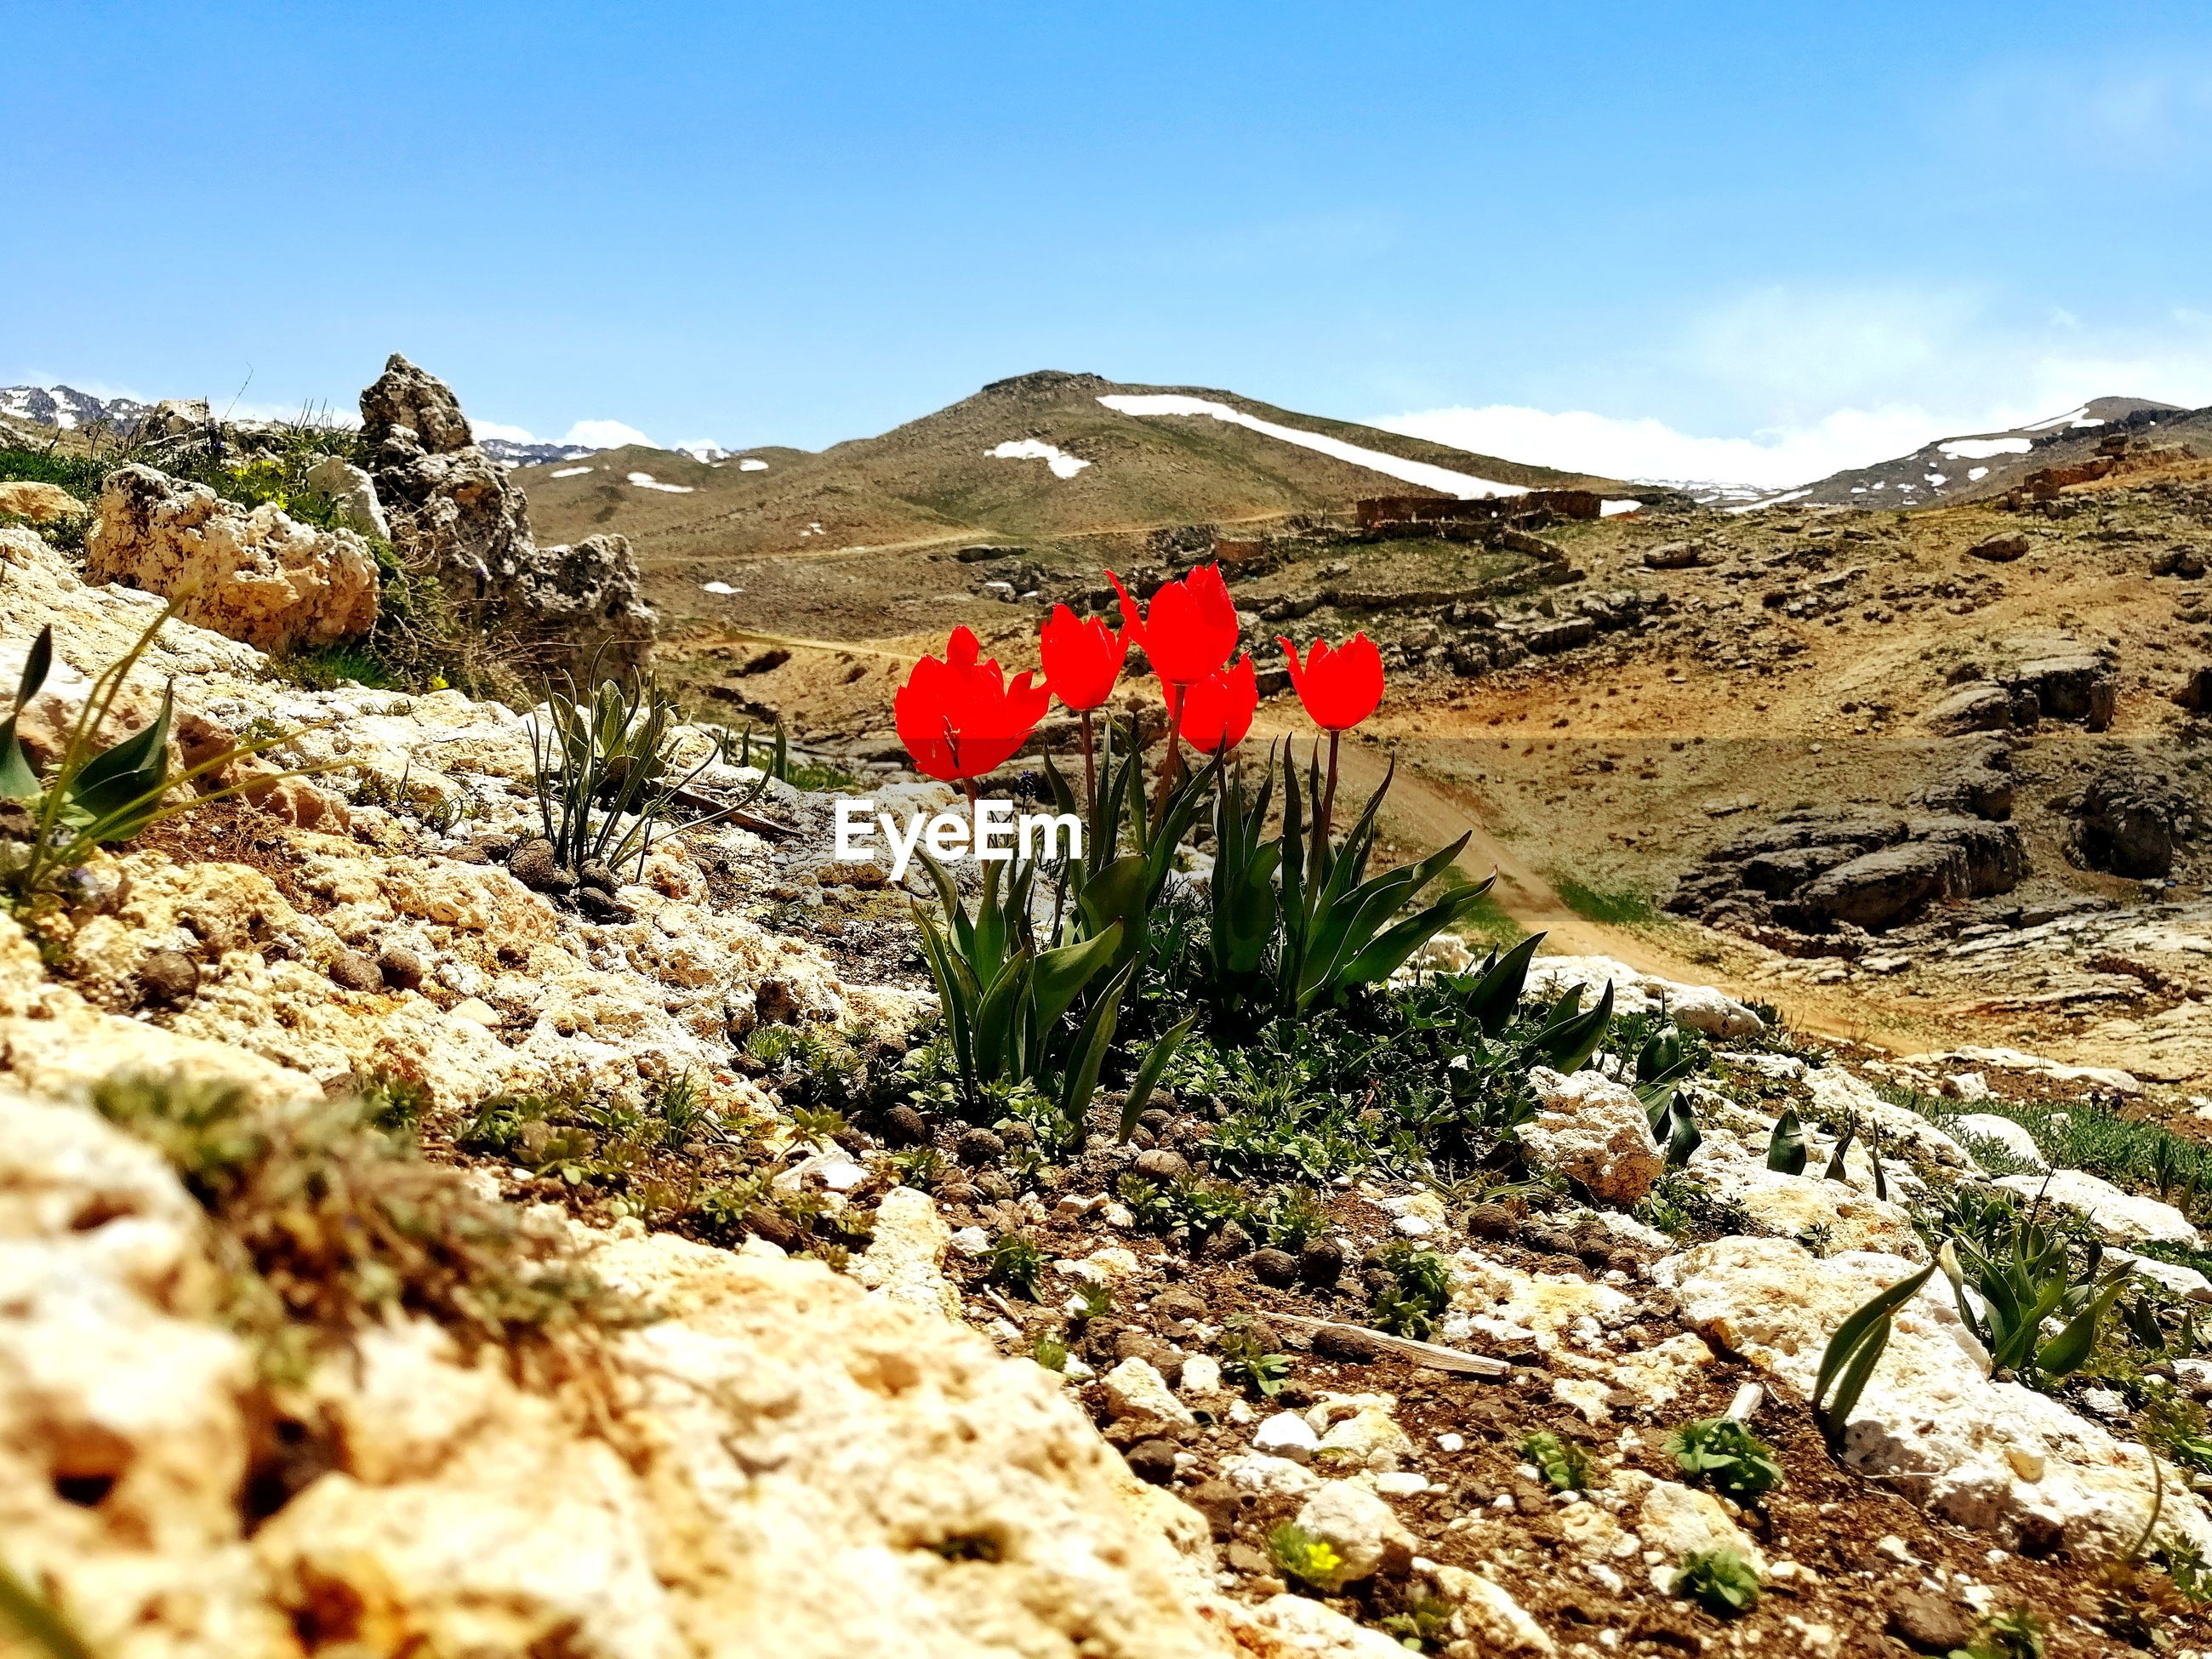 RED FLOWERING PLANTS ON ROCKY MOUNTAINS